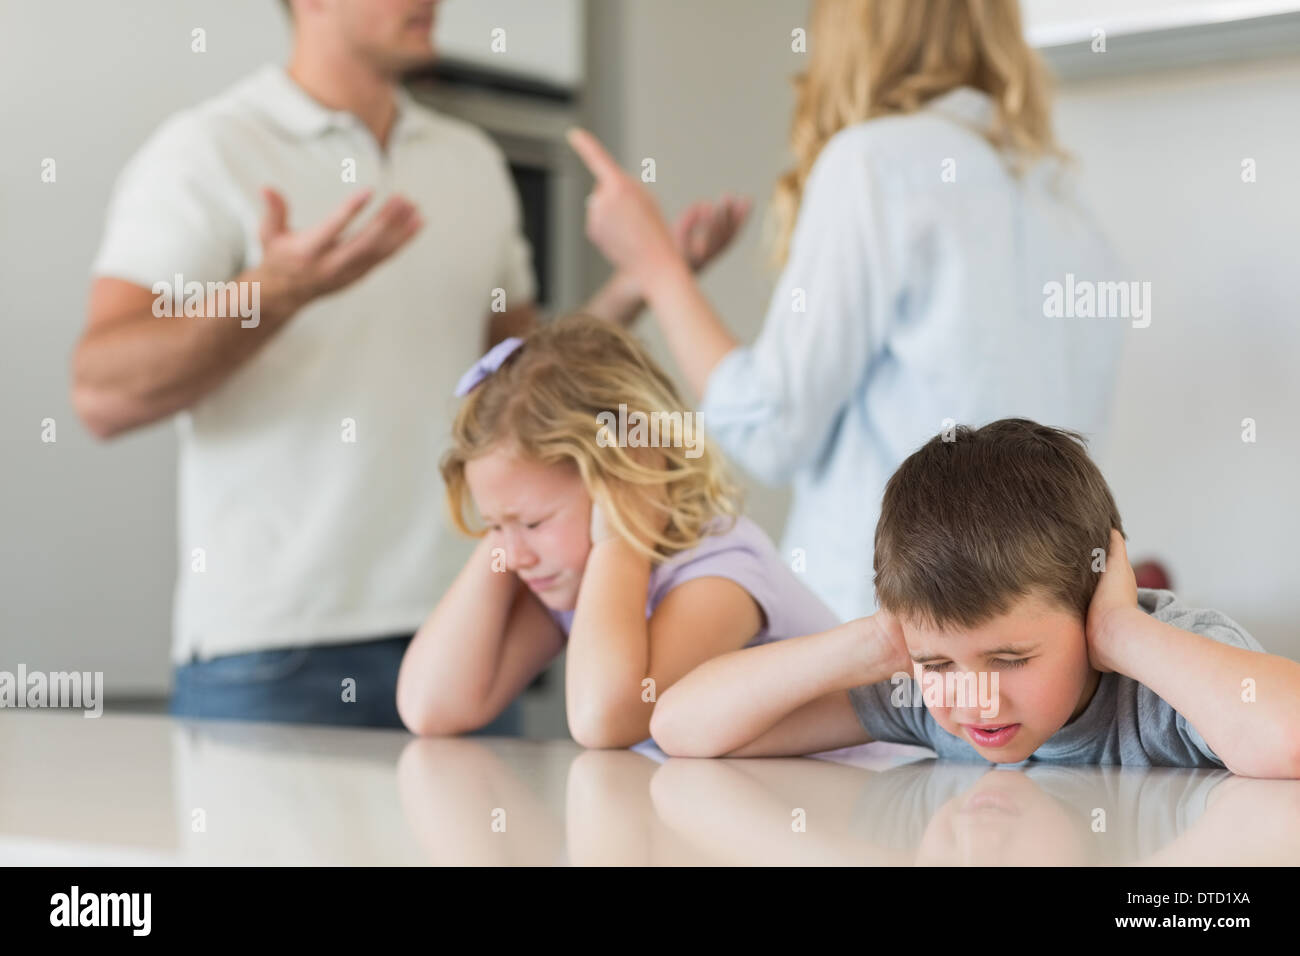 Children covering ears while parents arguing - Stock Image